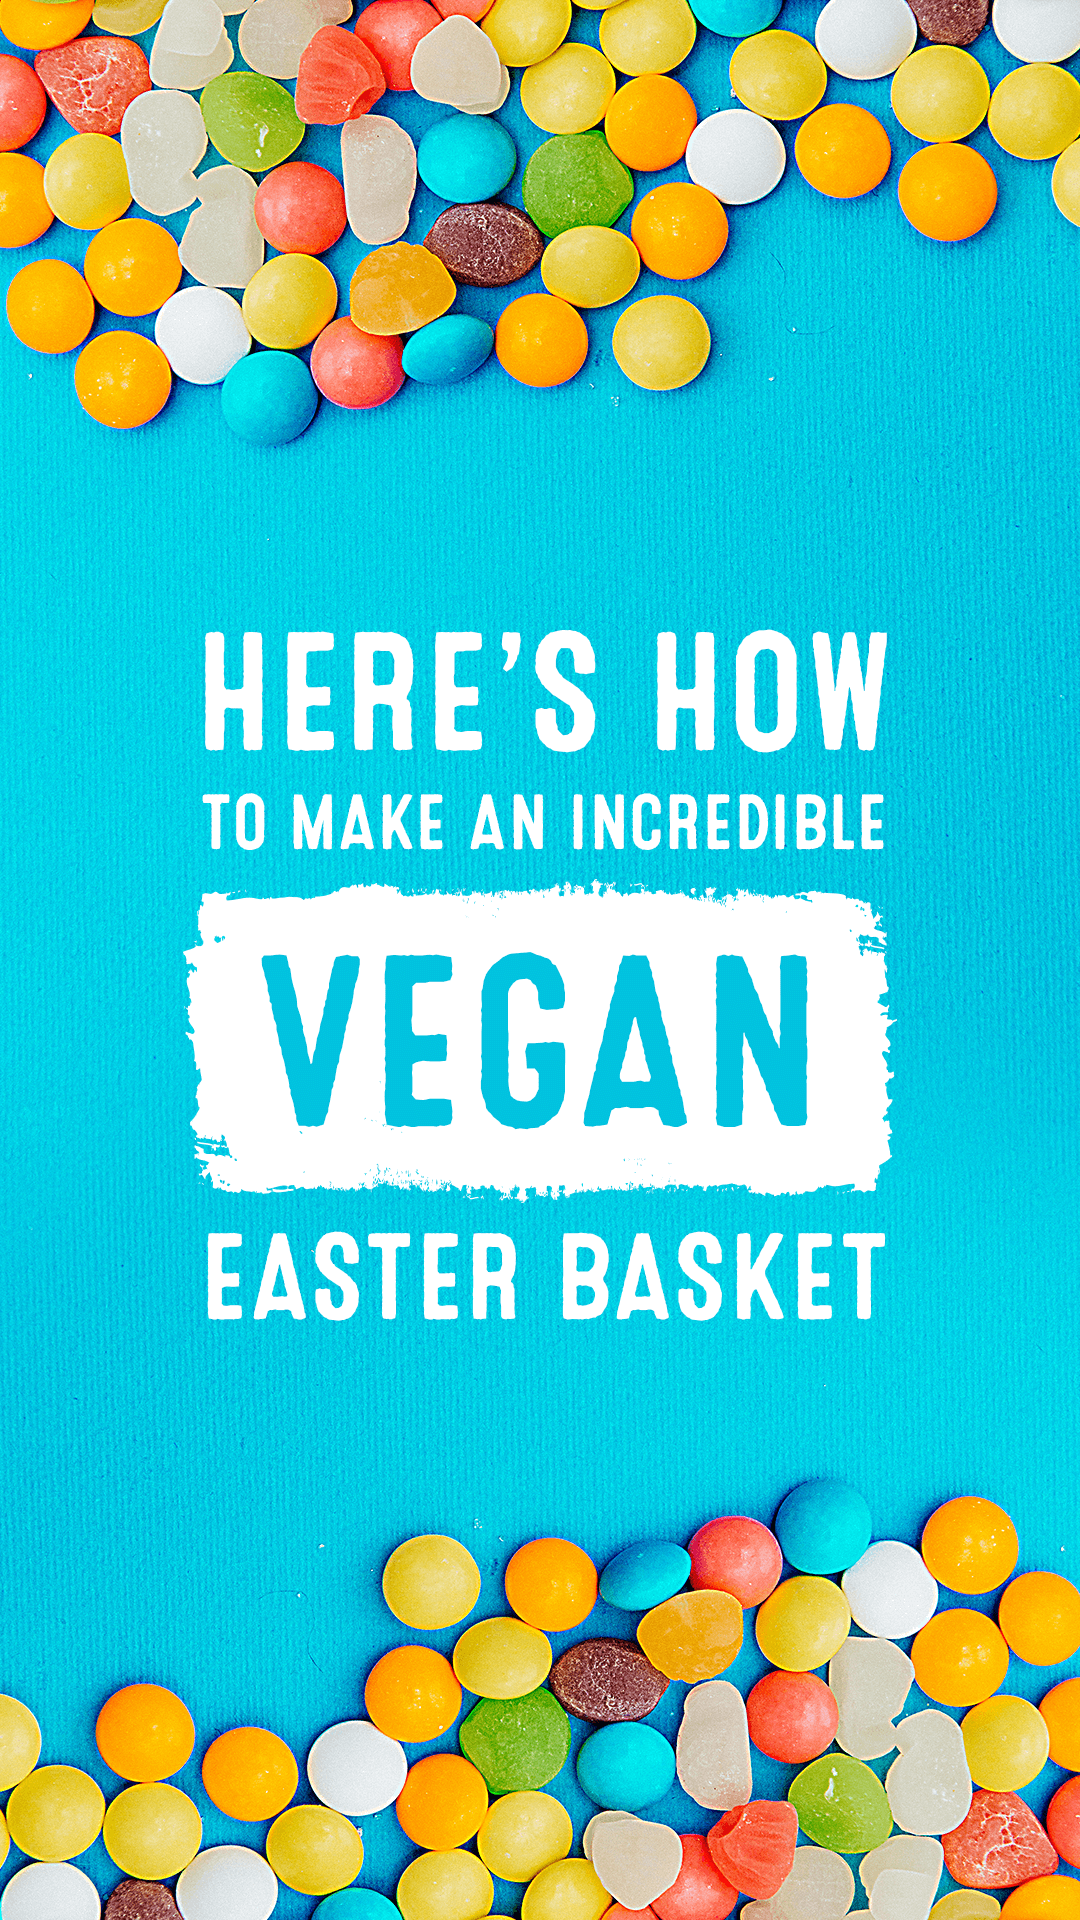 Here's How to Make an Incredible Vegan Easter Basket